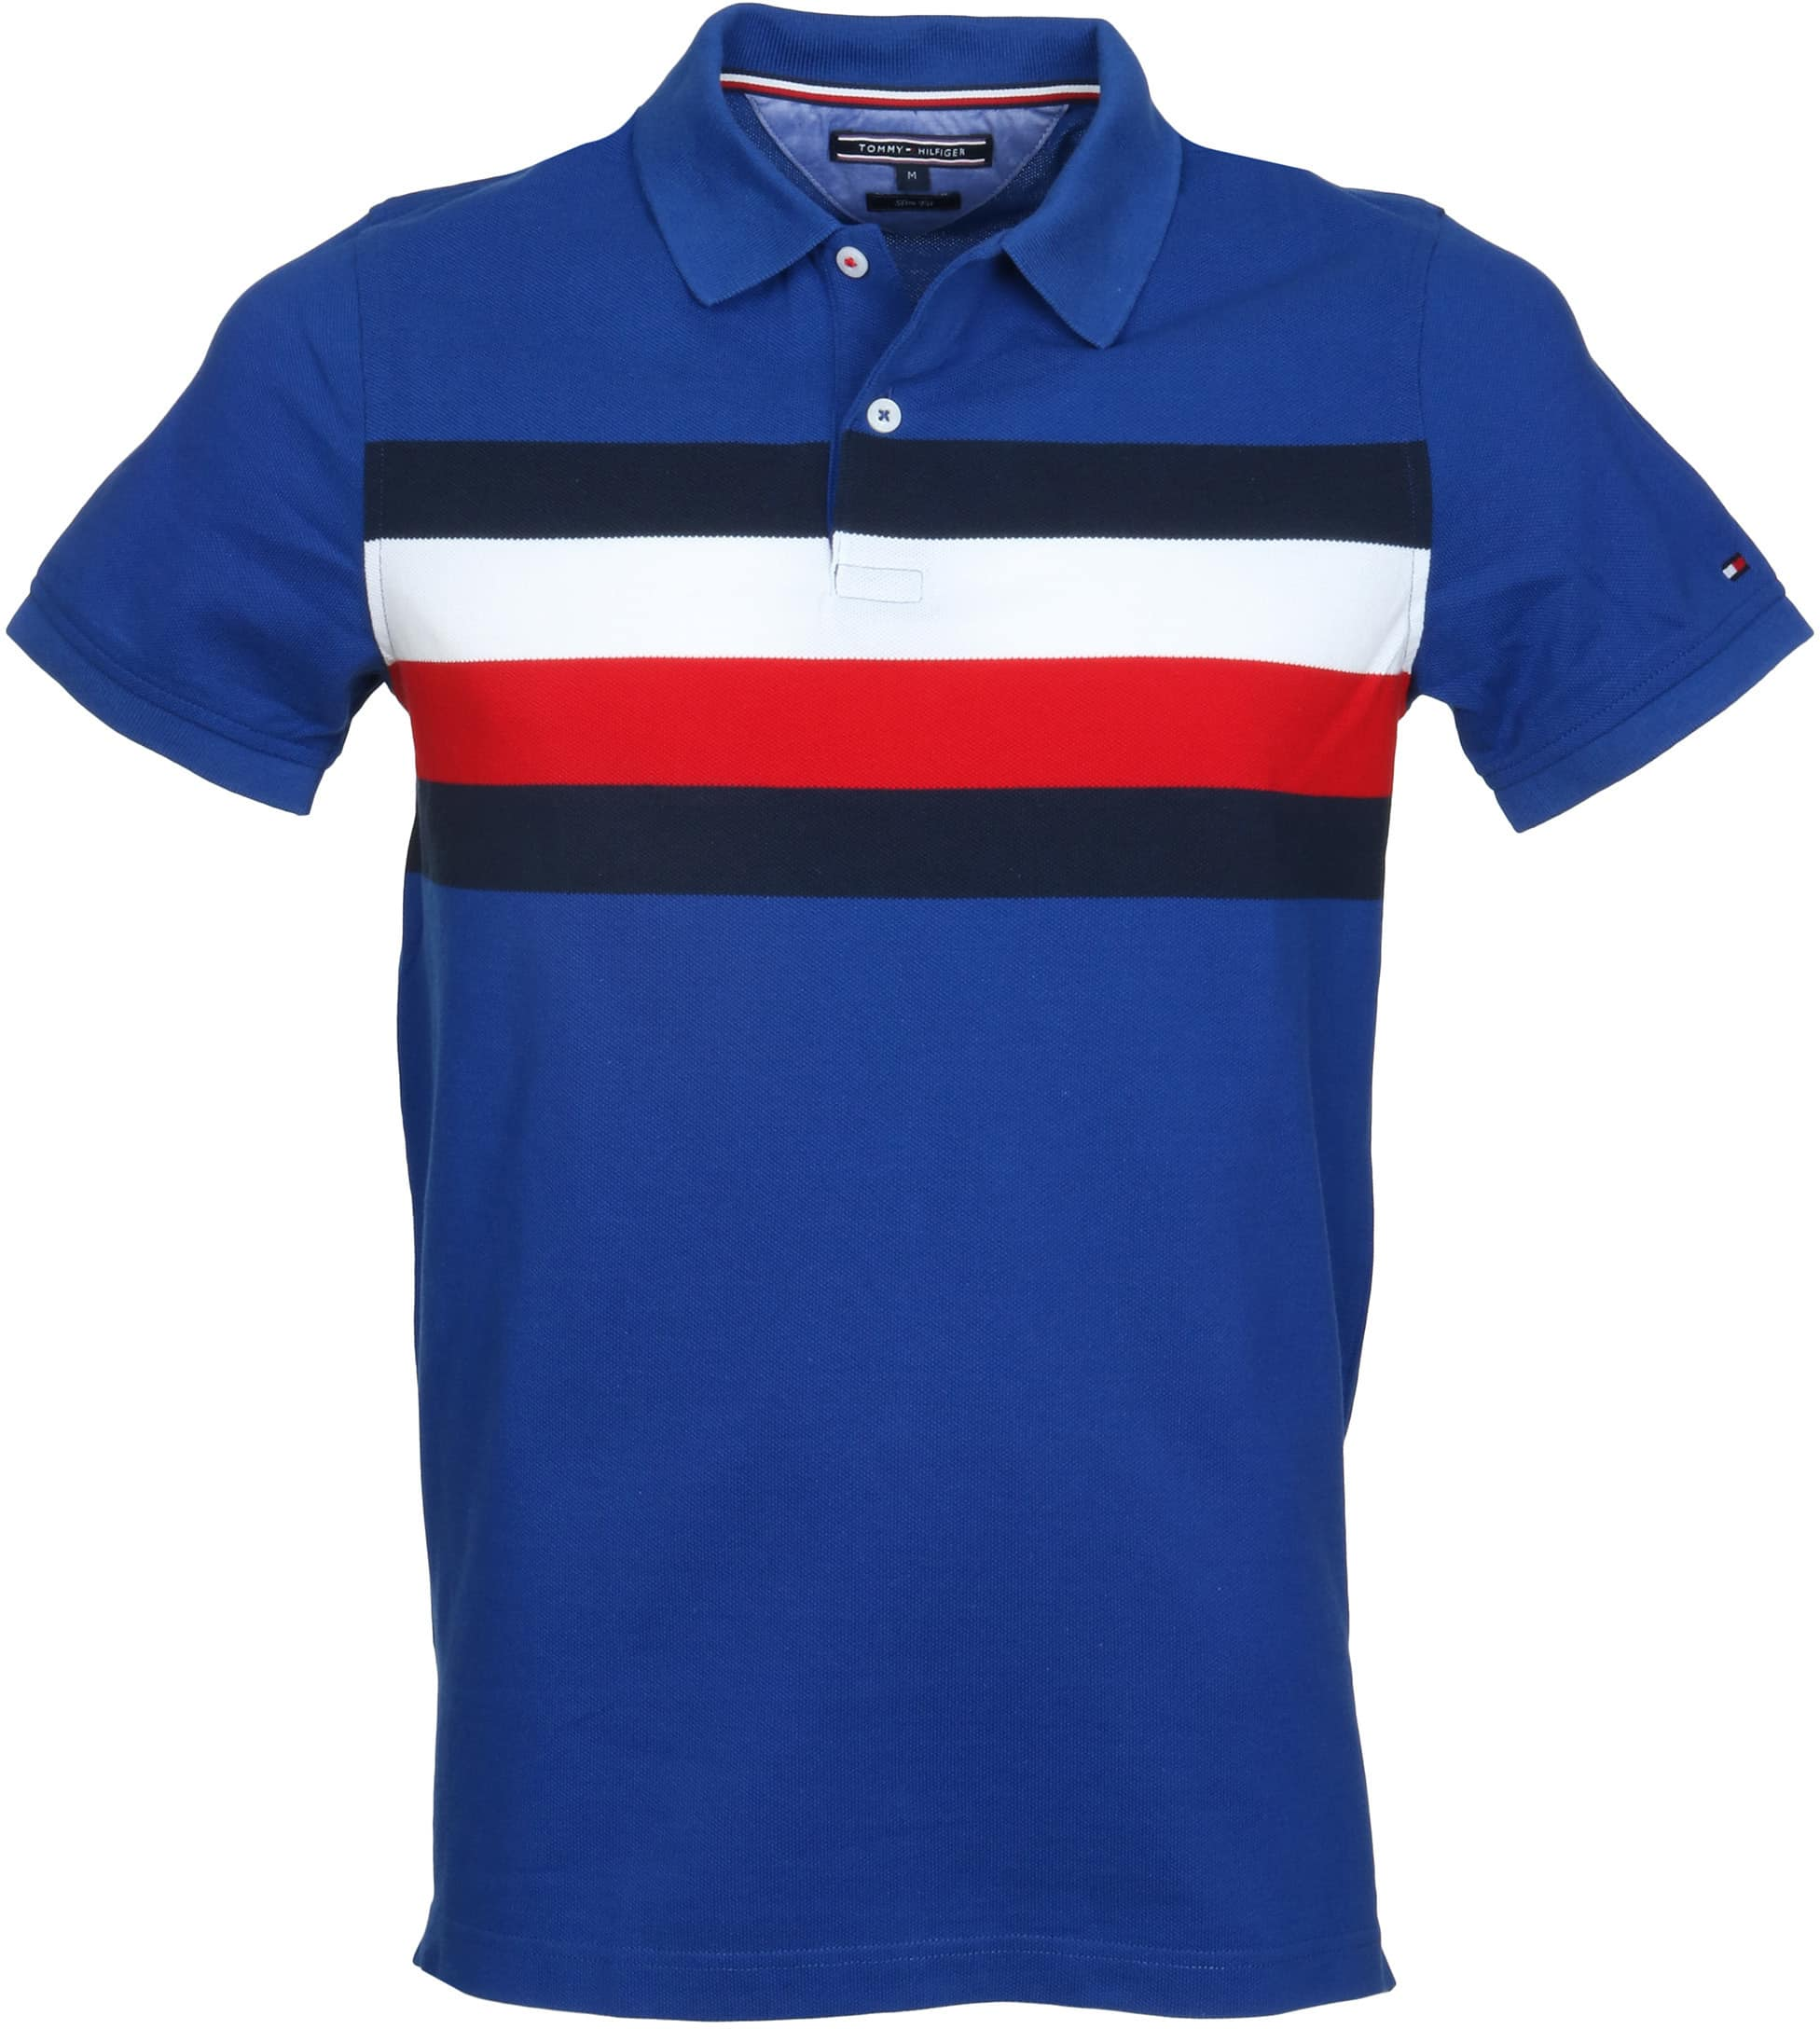 a555fbef Tommy Hilfiger Polo Blue Stripes MW0MW06178-904 order online | Suitable